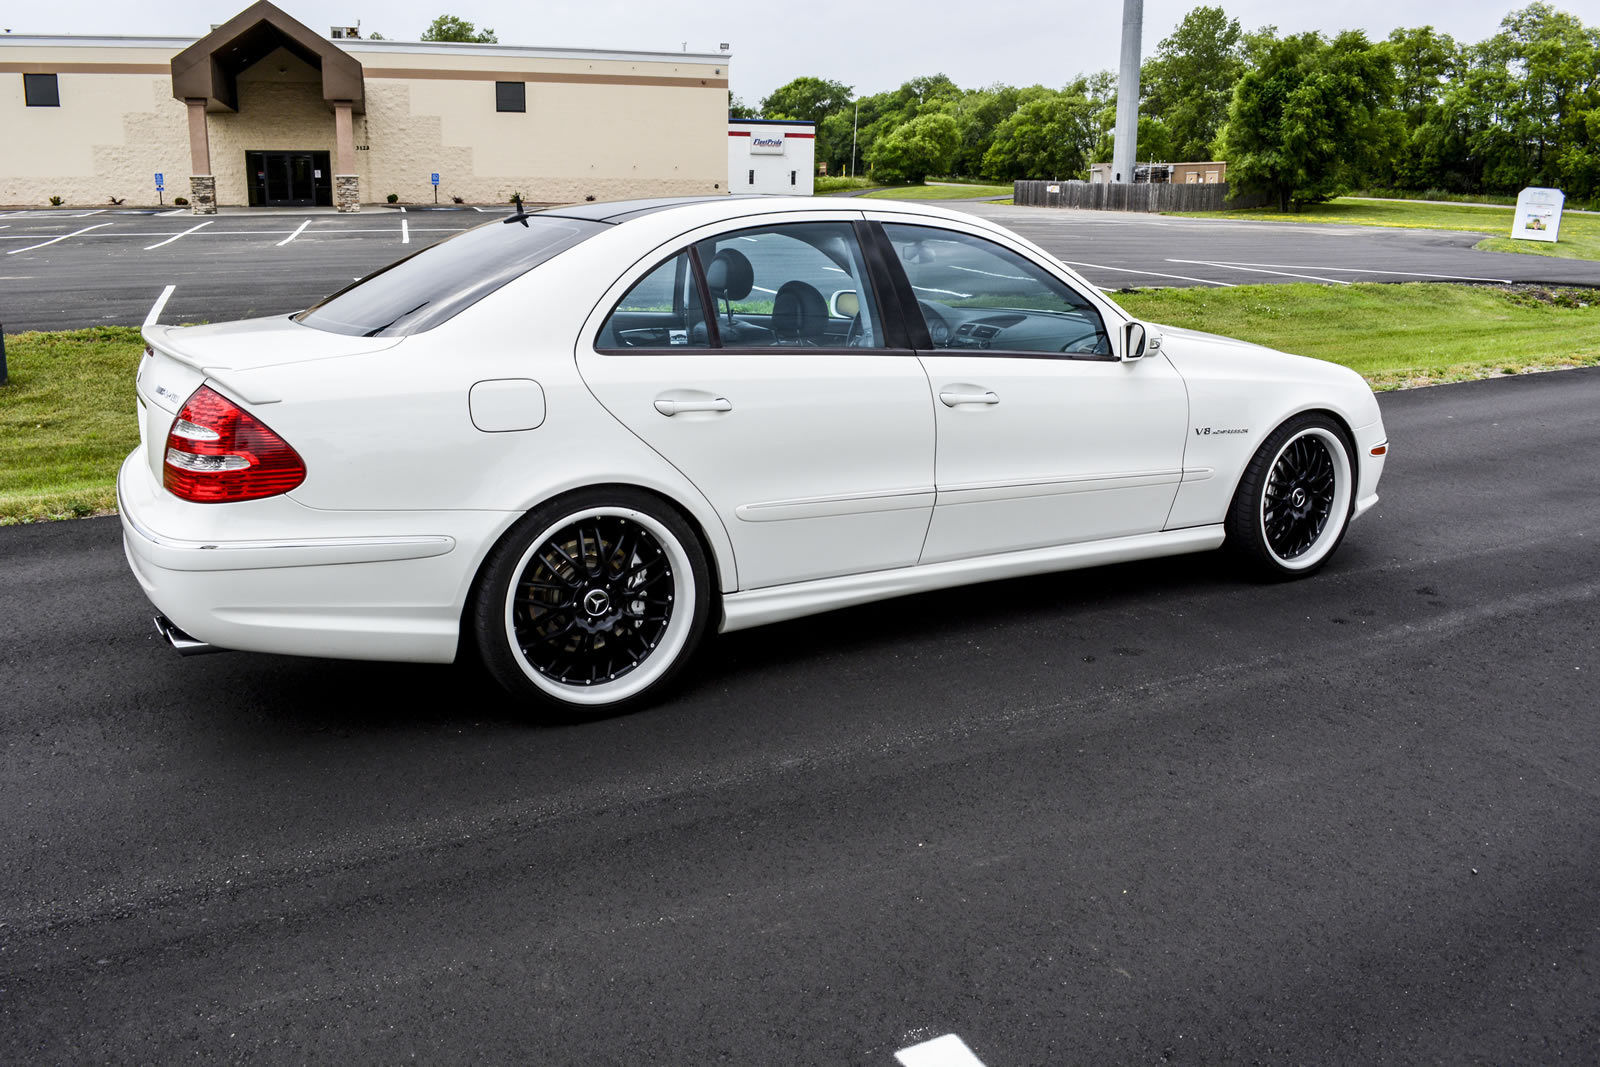 mercedes benz w211 e55 amg white on black benztuning